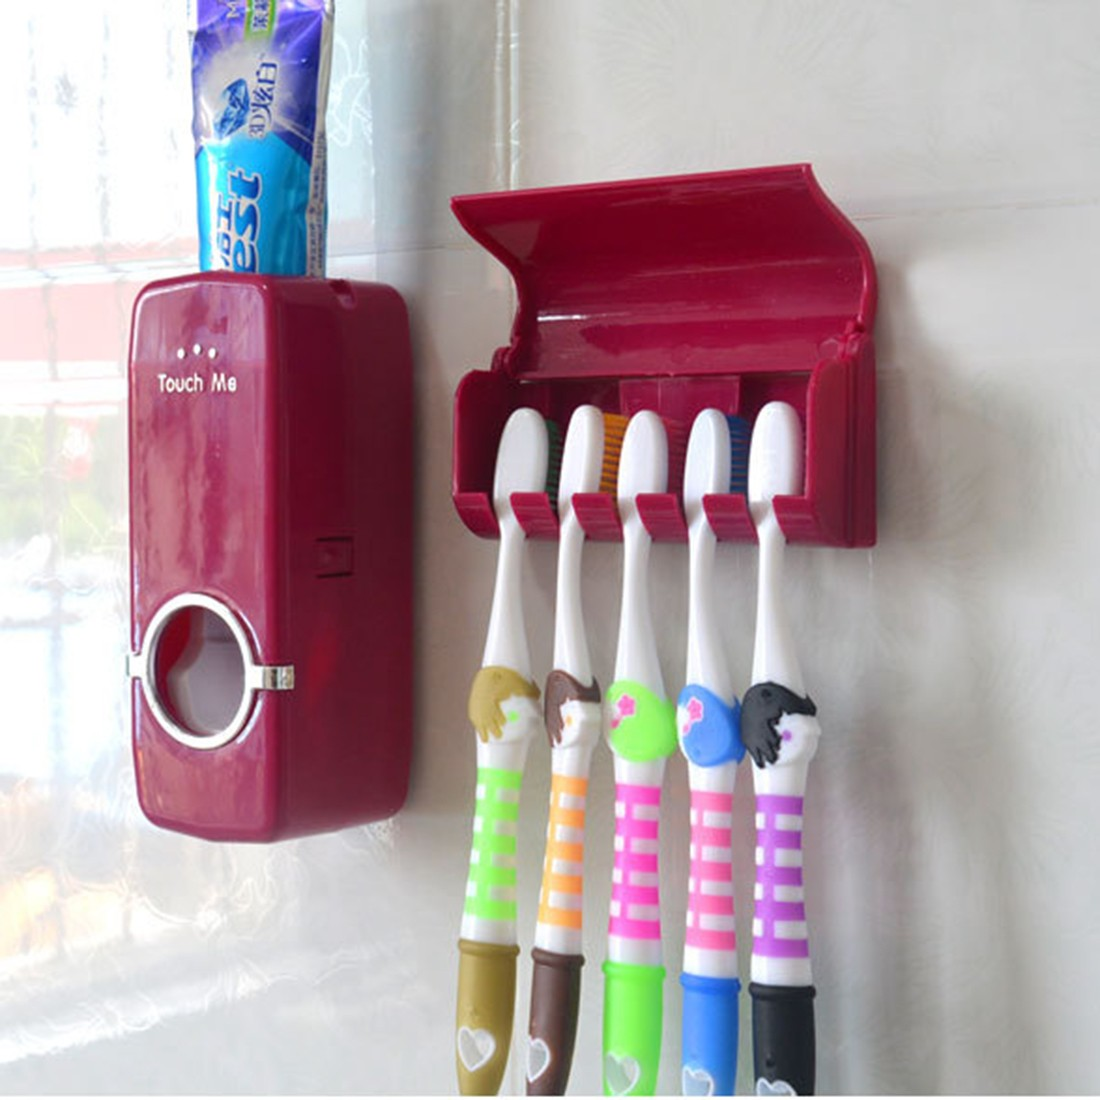 New Toothpaste Dispenser 5 Toothbrush Holder Set Wall Mount Stand Toothbrush Family Tools Accessories Bathroom Products